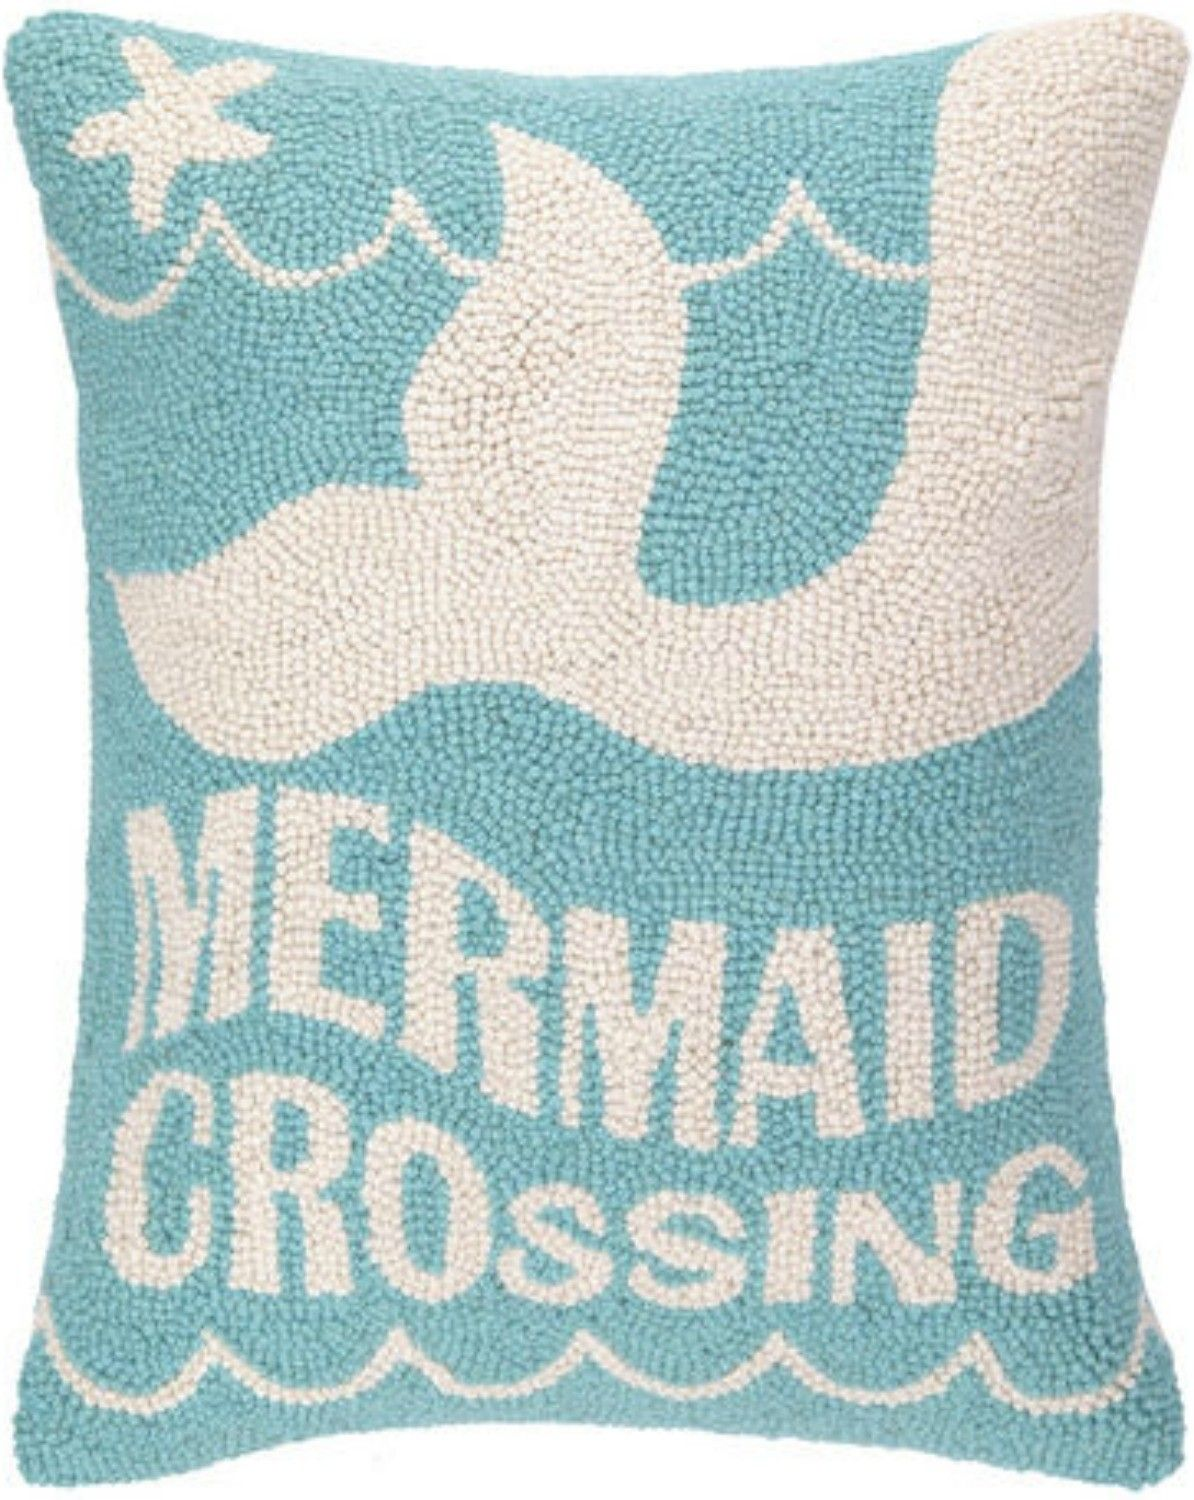 beach cover pillows pillowcase themed collection cases shams covers size cheap full coastal anchor pillow t of throw